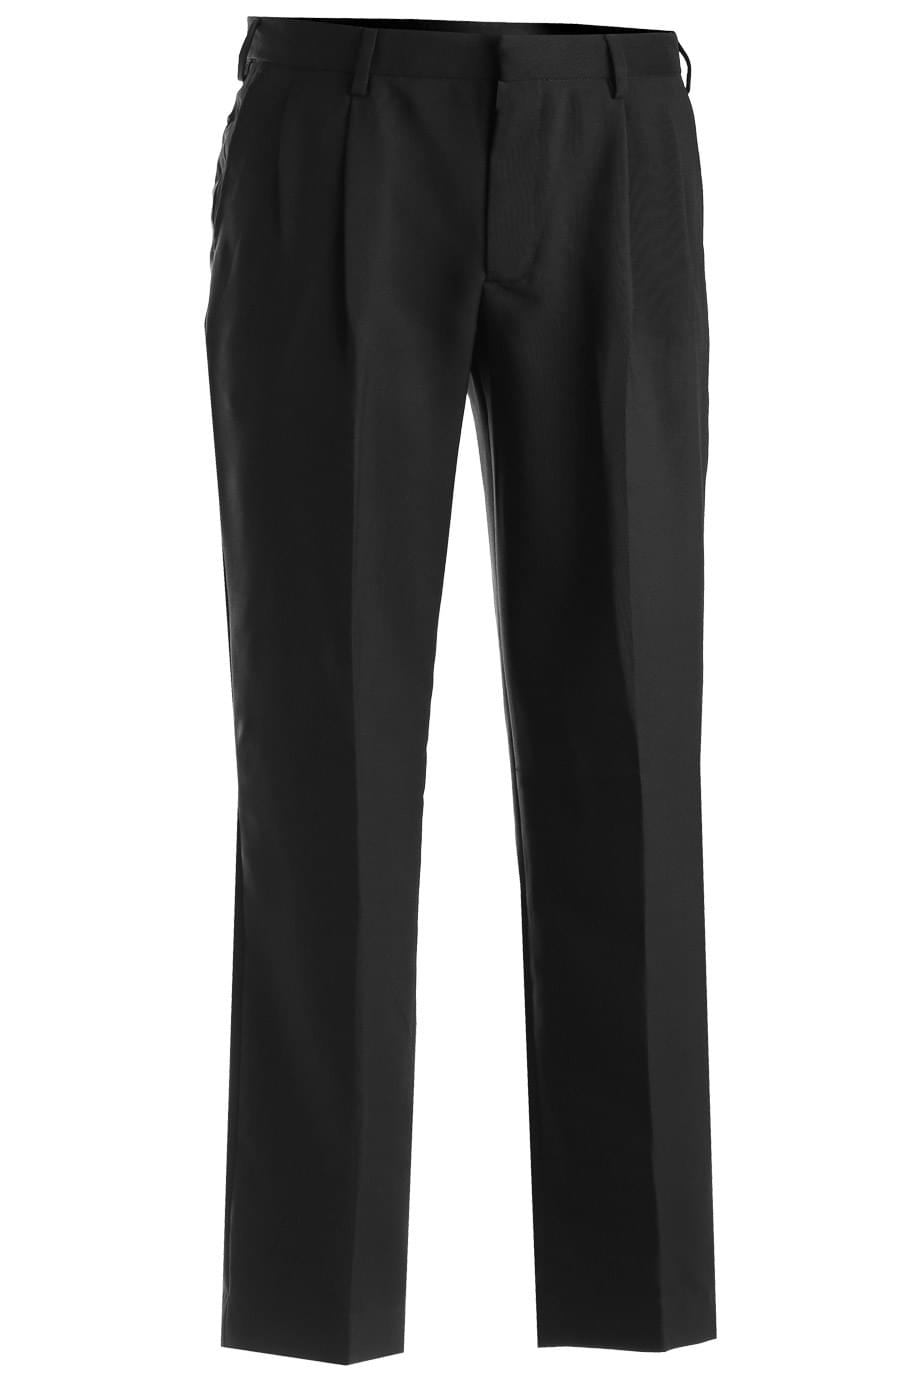 POLYESTER PLEATED FRONT PANT